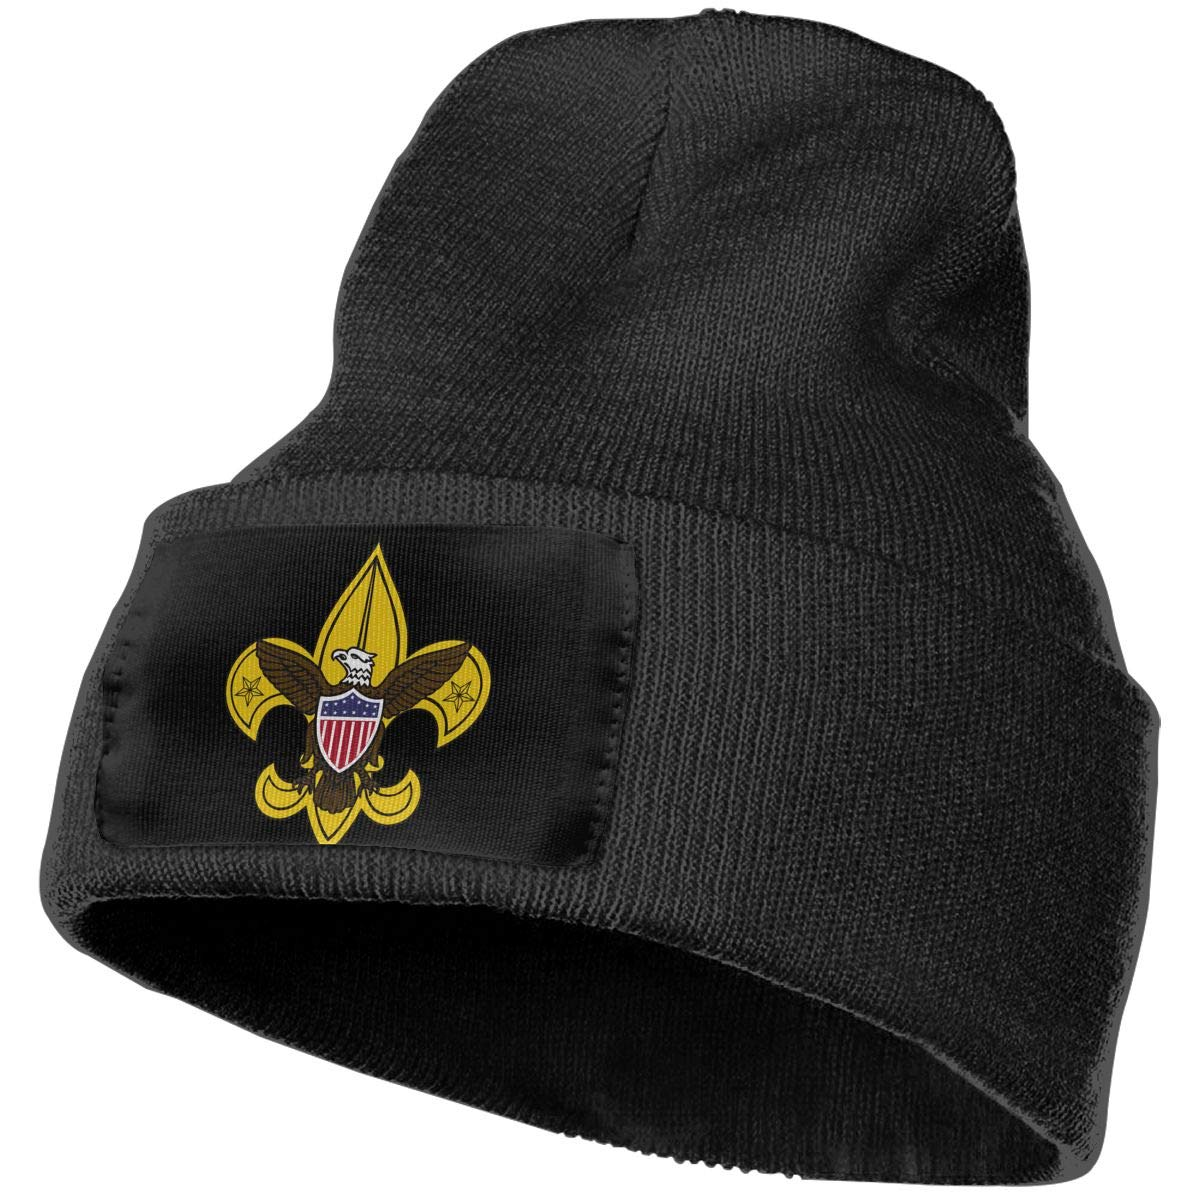 Boy Scout Emblem Warm Winter Hat Knit Beanie Skull Cap Cuff Beanie Hat Winter Hats for Men /& Women